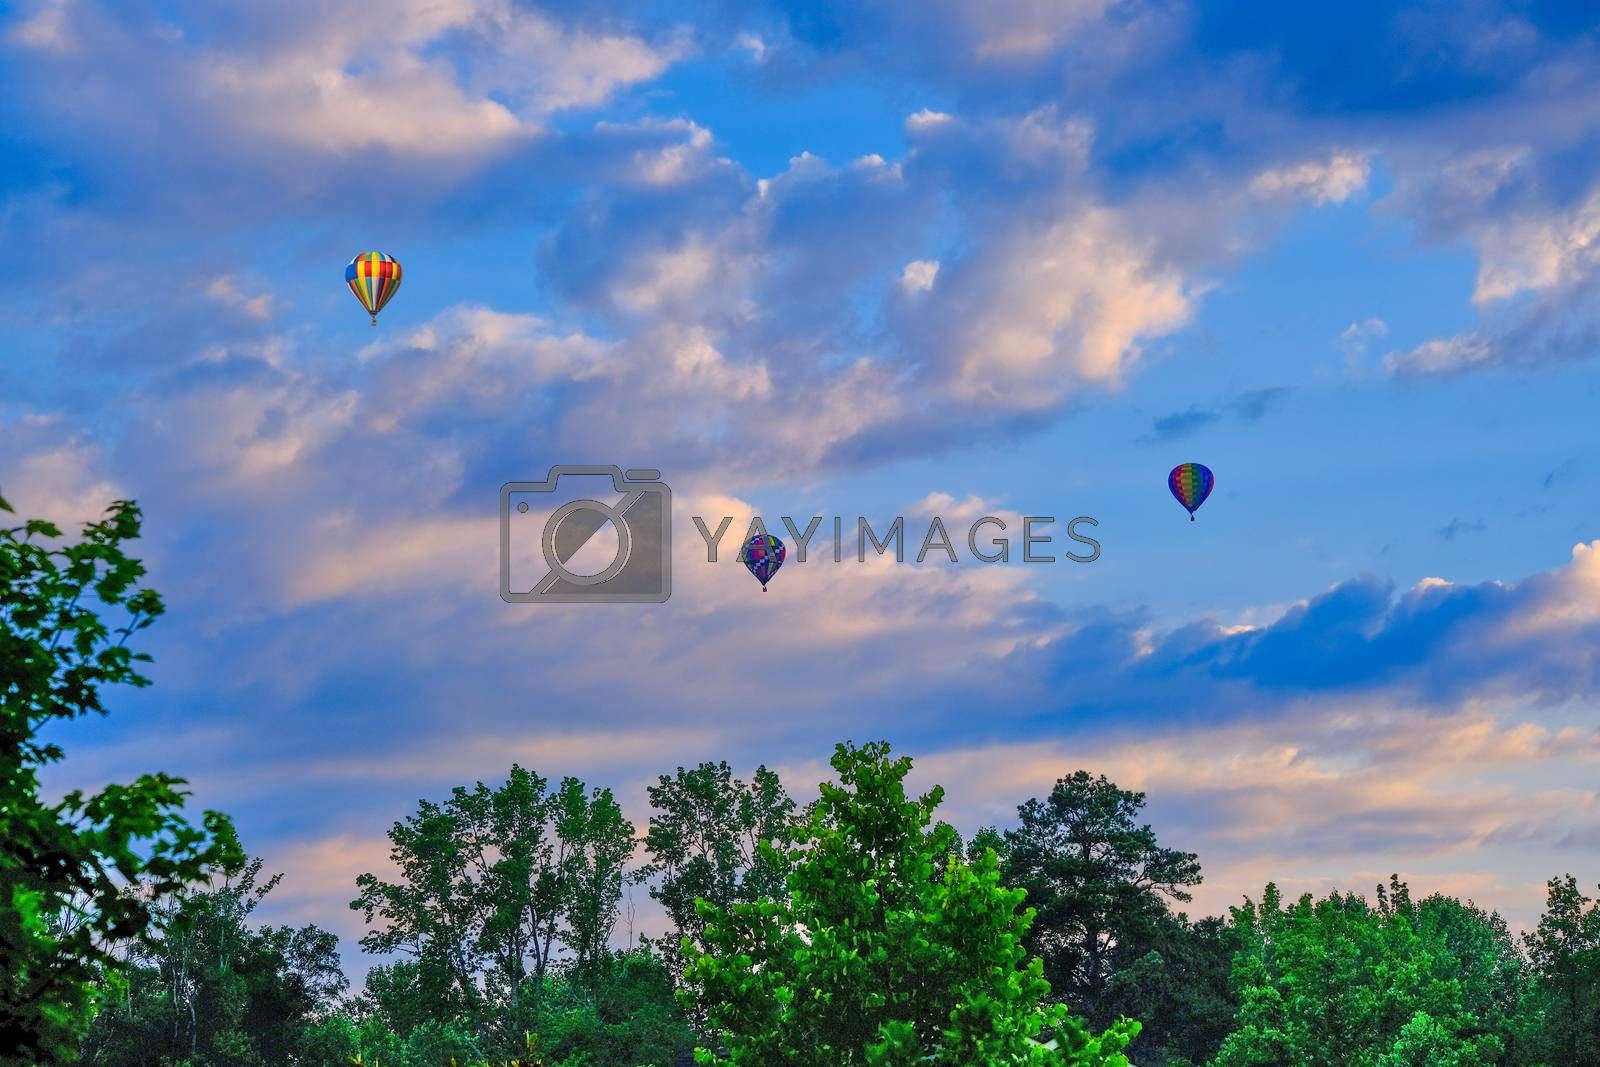 Colorful hot air balloons floating in a nice sky over green trees